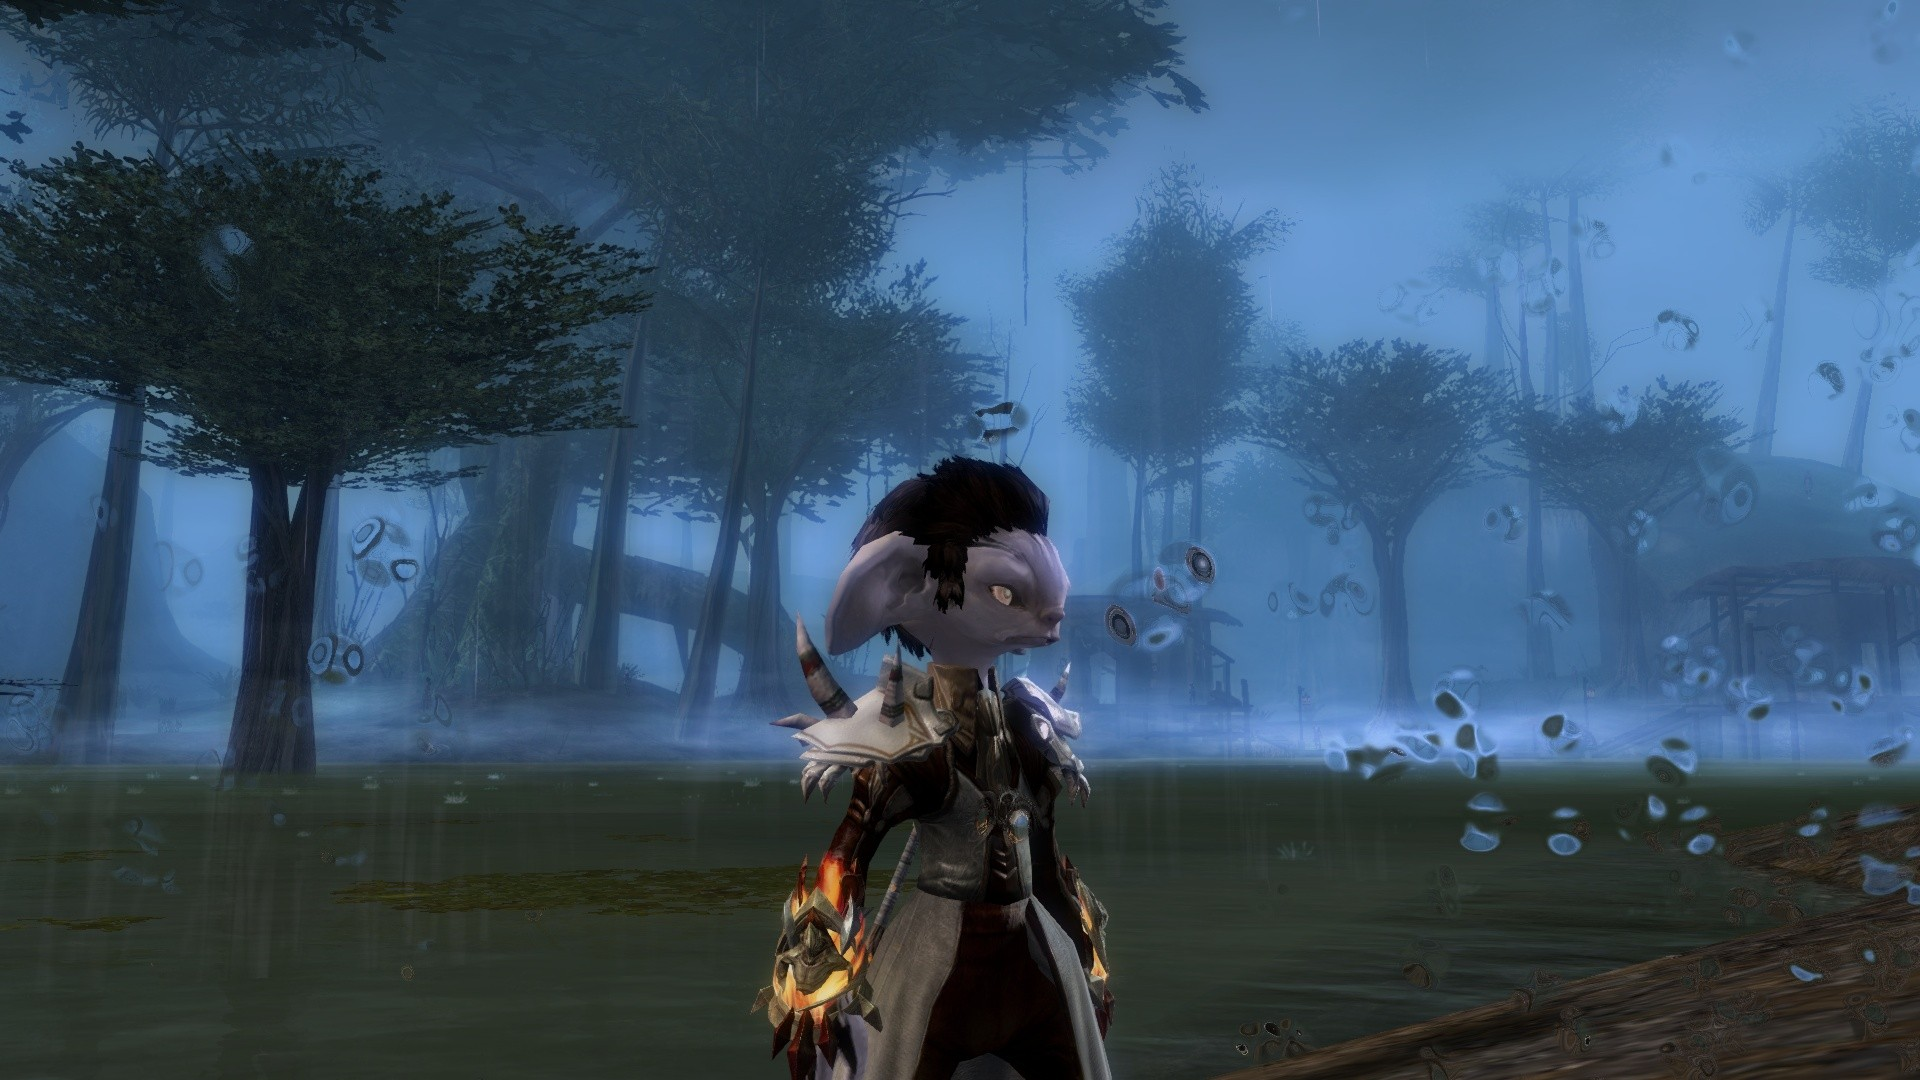 GW2-Summertime is over also in GW2